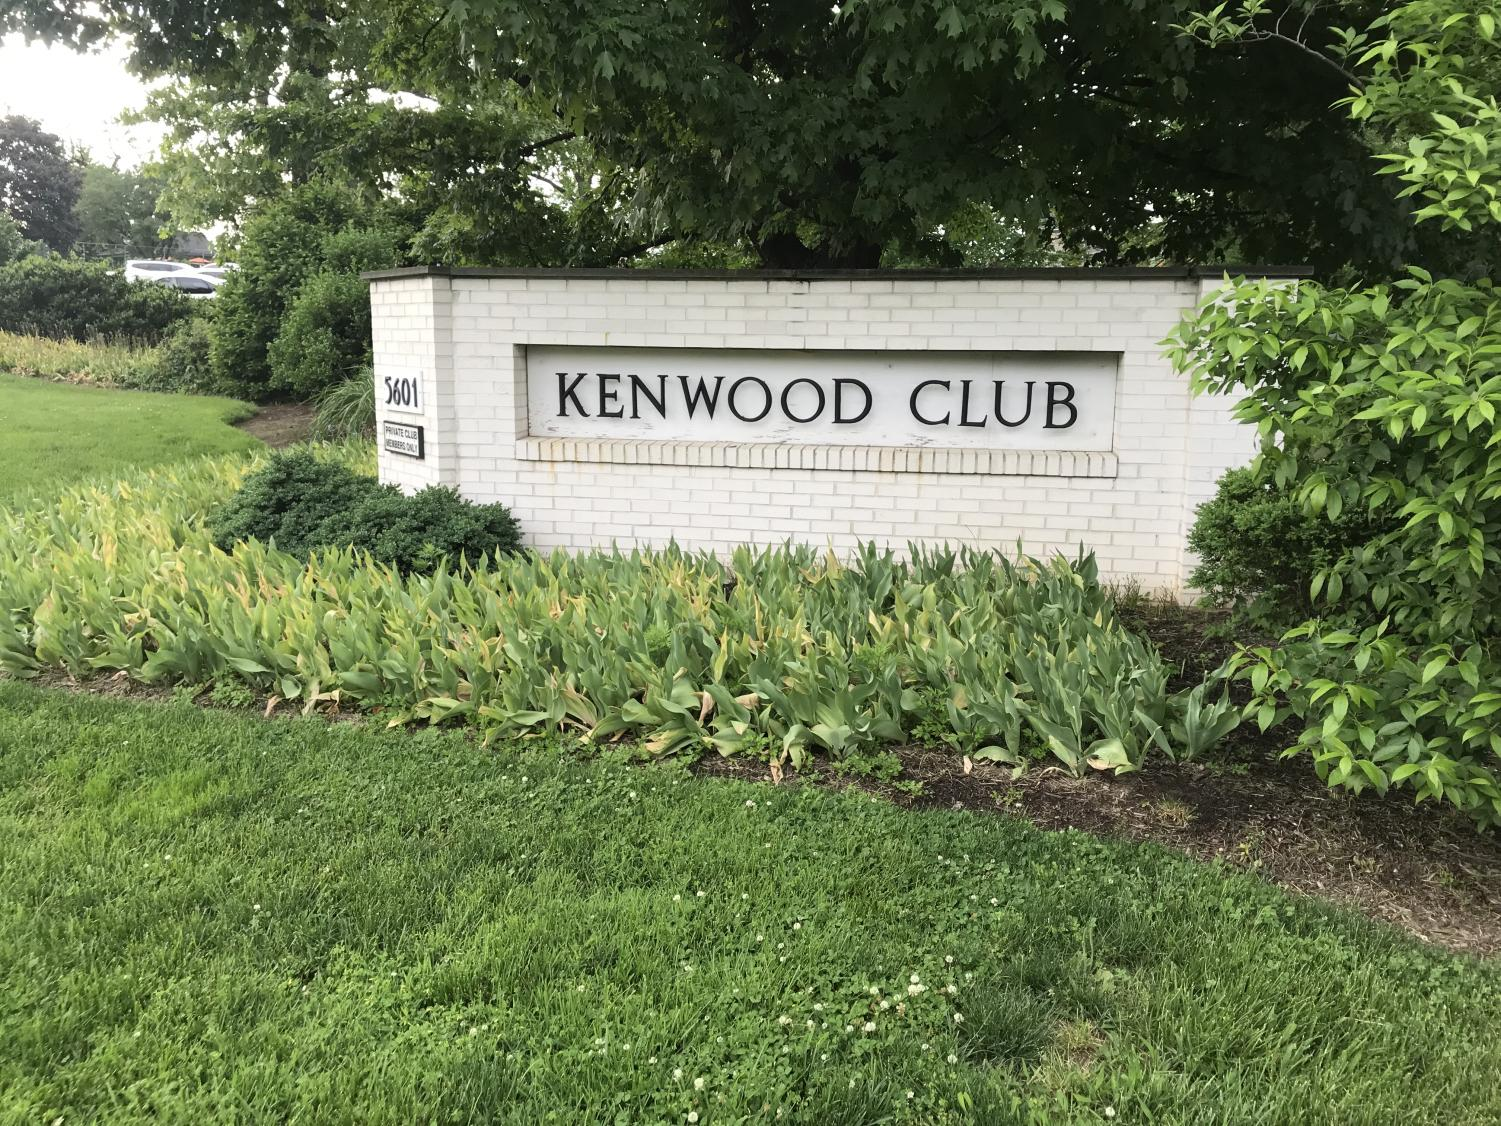 Kenwood Country Club is one of the clubs that would have been affected by Del. Moon's proposed Maryland House bill #176, which would tax the four richest Montgomery County country clubs closer to the market rate. This bill's revenue could have provided additional funding for our schools—but all three delegates from Bethesda voted against it, and the bill failed 11-13 in a Feb. 3 vote.